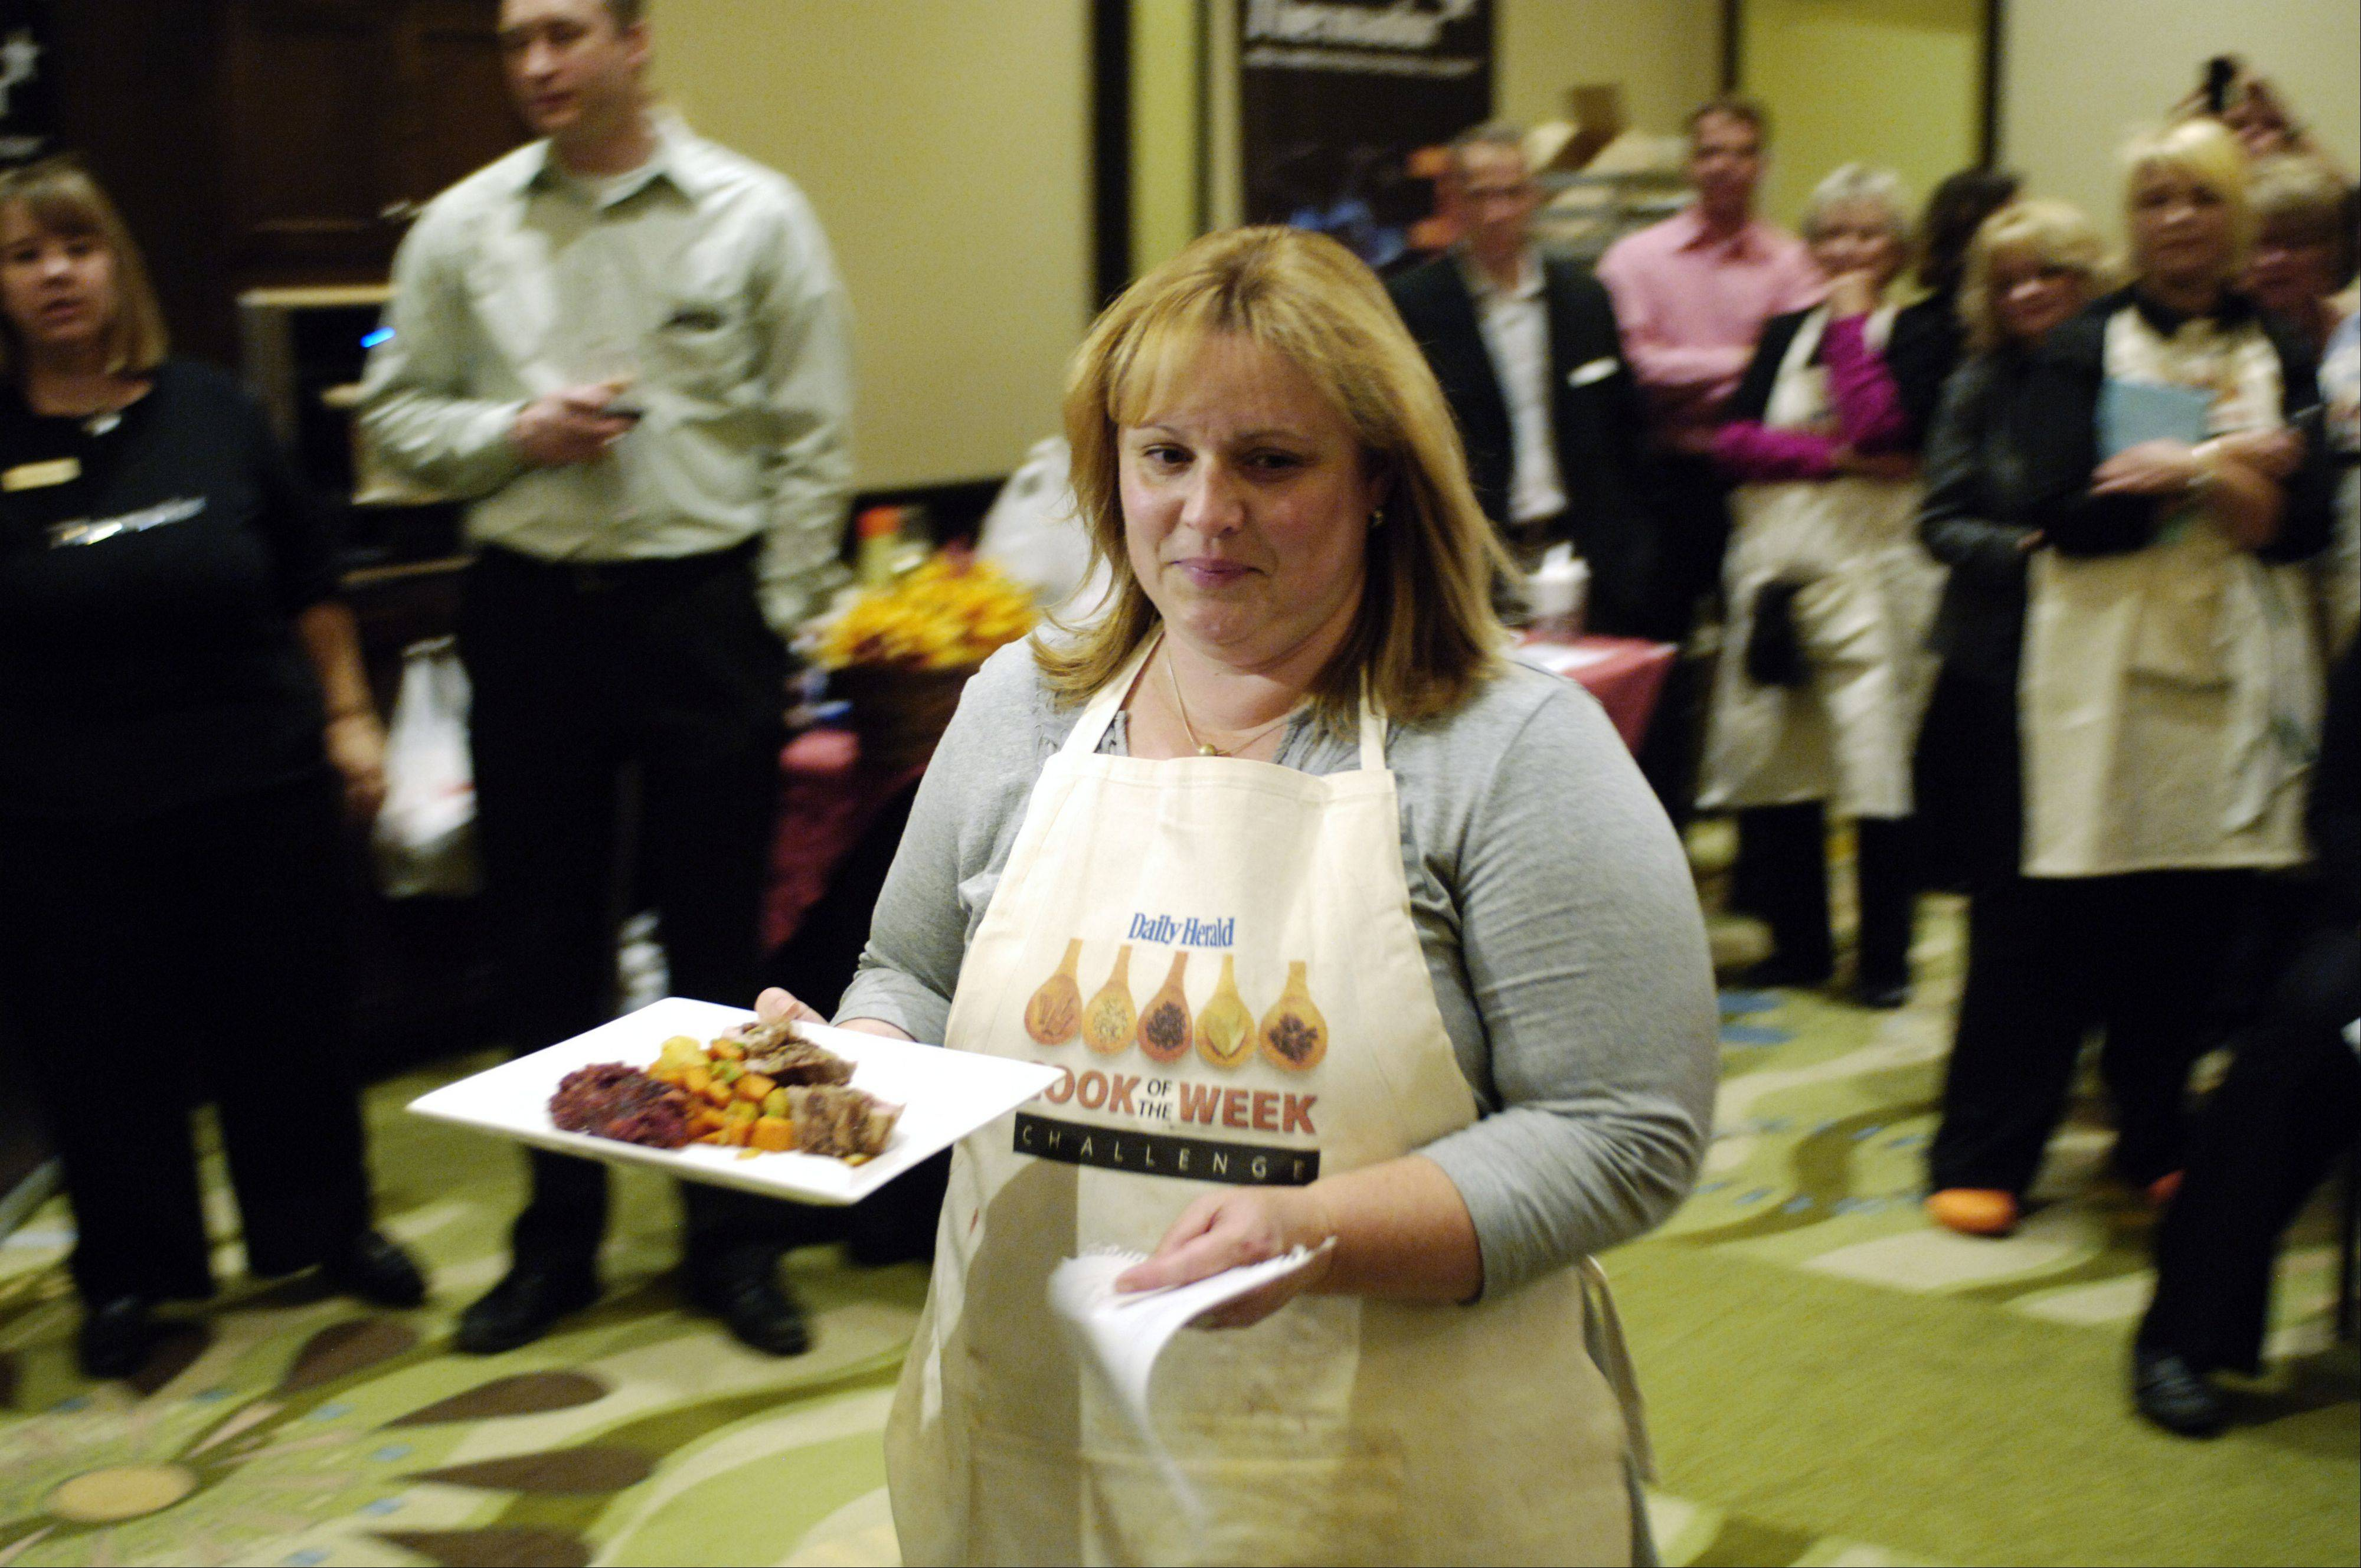 Penny Kazmier carries her pork creation to the judge's table during the Daily Herald Cook of the Week Challenge live cook-off.